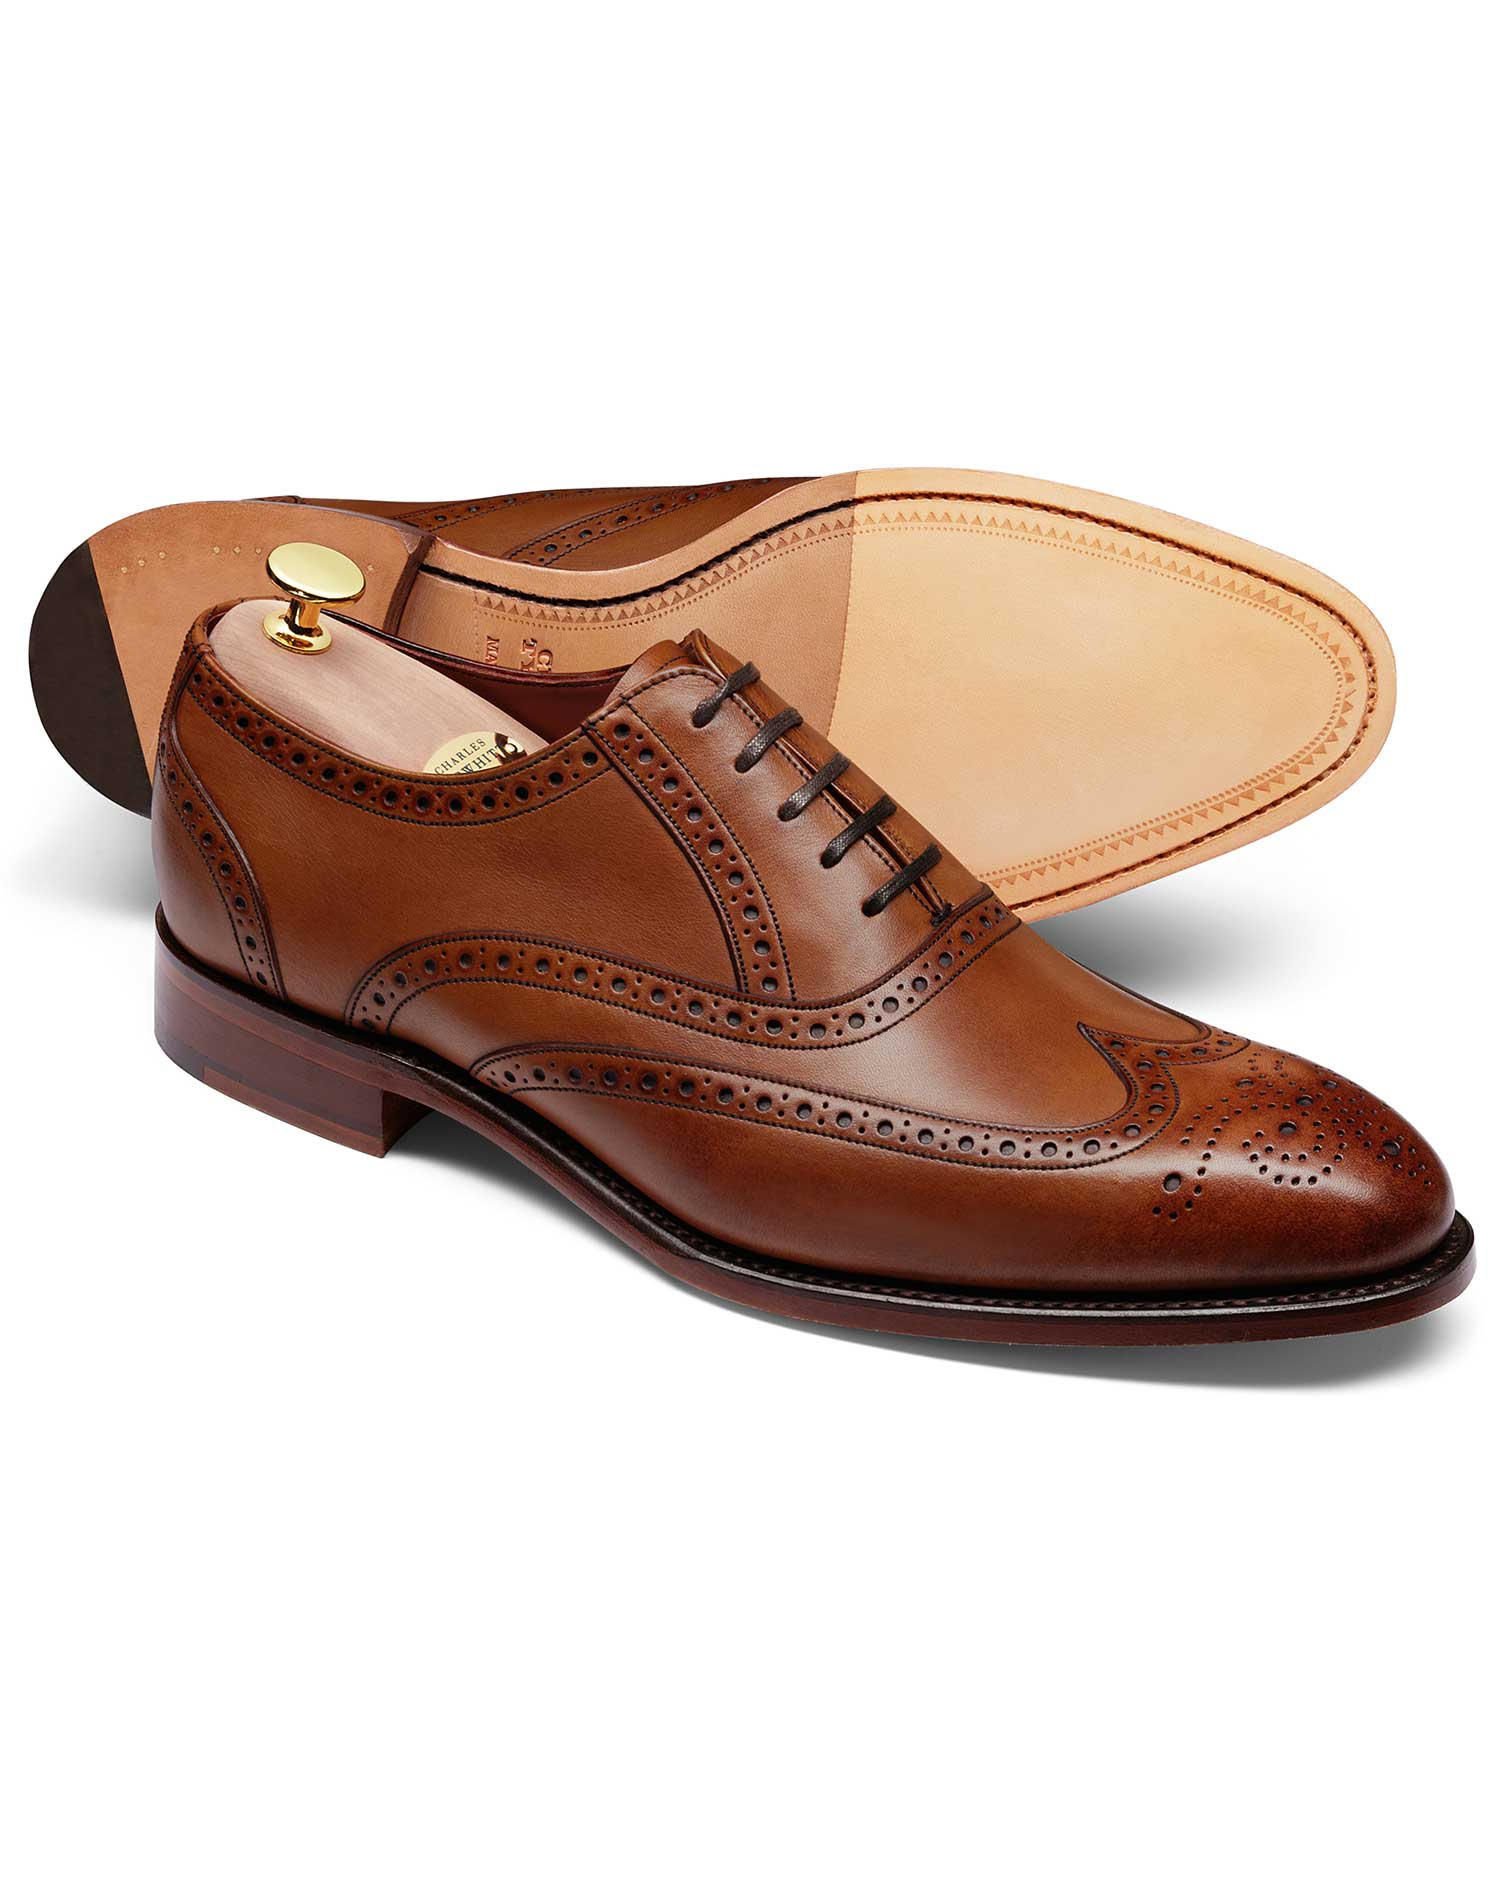 Chocolate Ashton Calf Leather Wing Tip Brogue Oxford Shoes Size 9 R by Charles Tyrwhitt